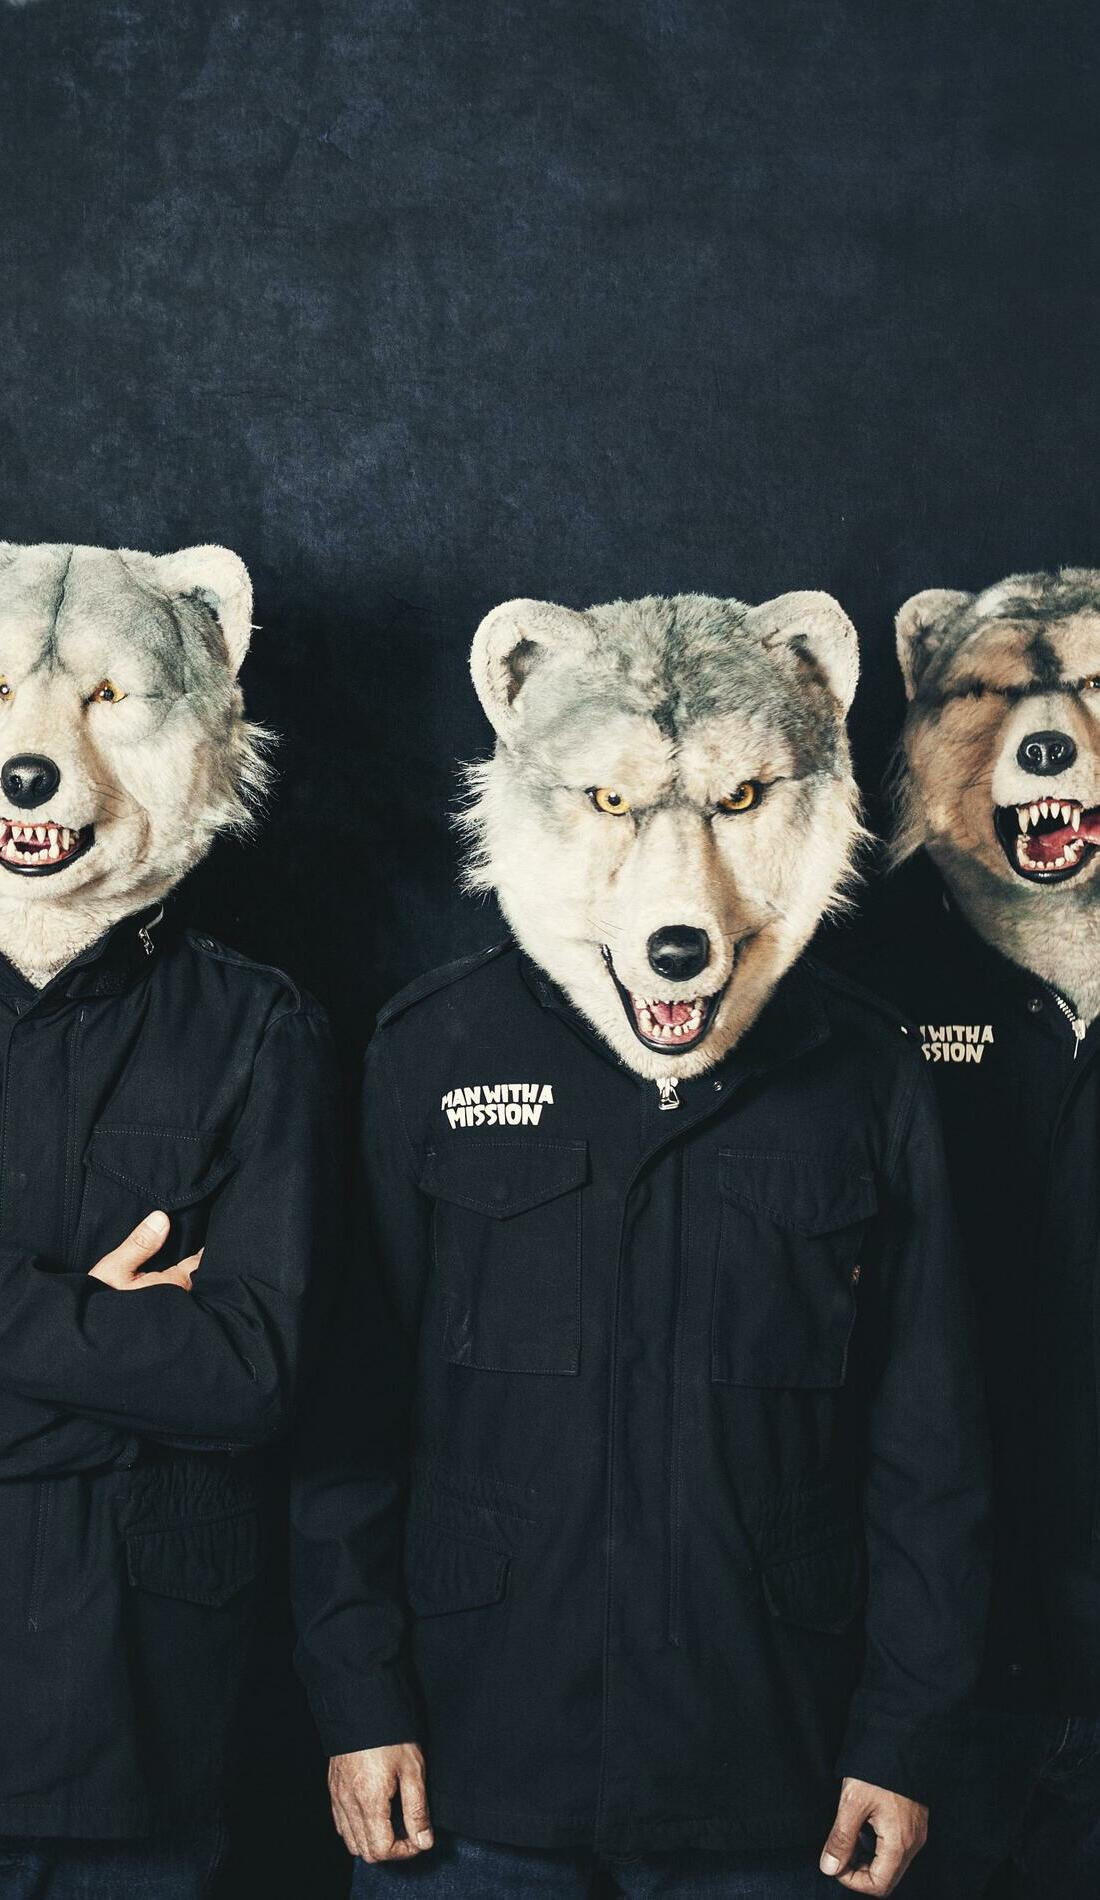 A Man With A Mission live event